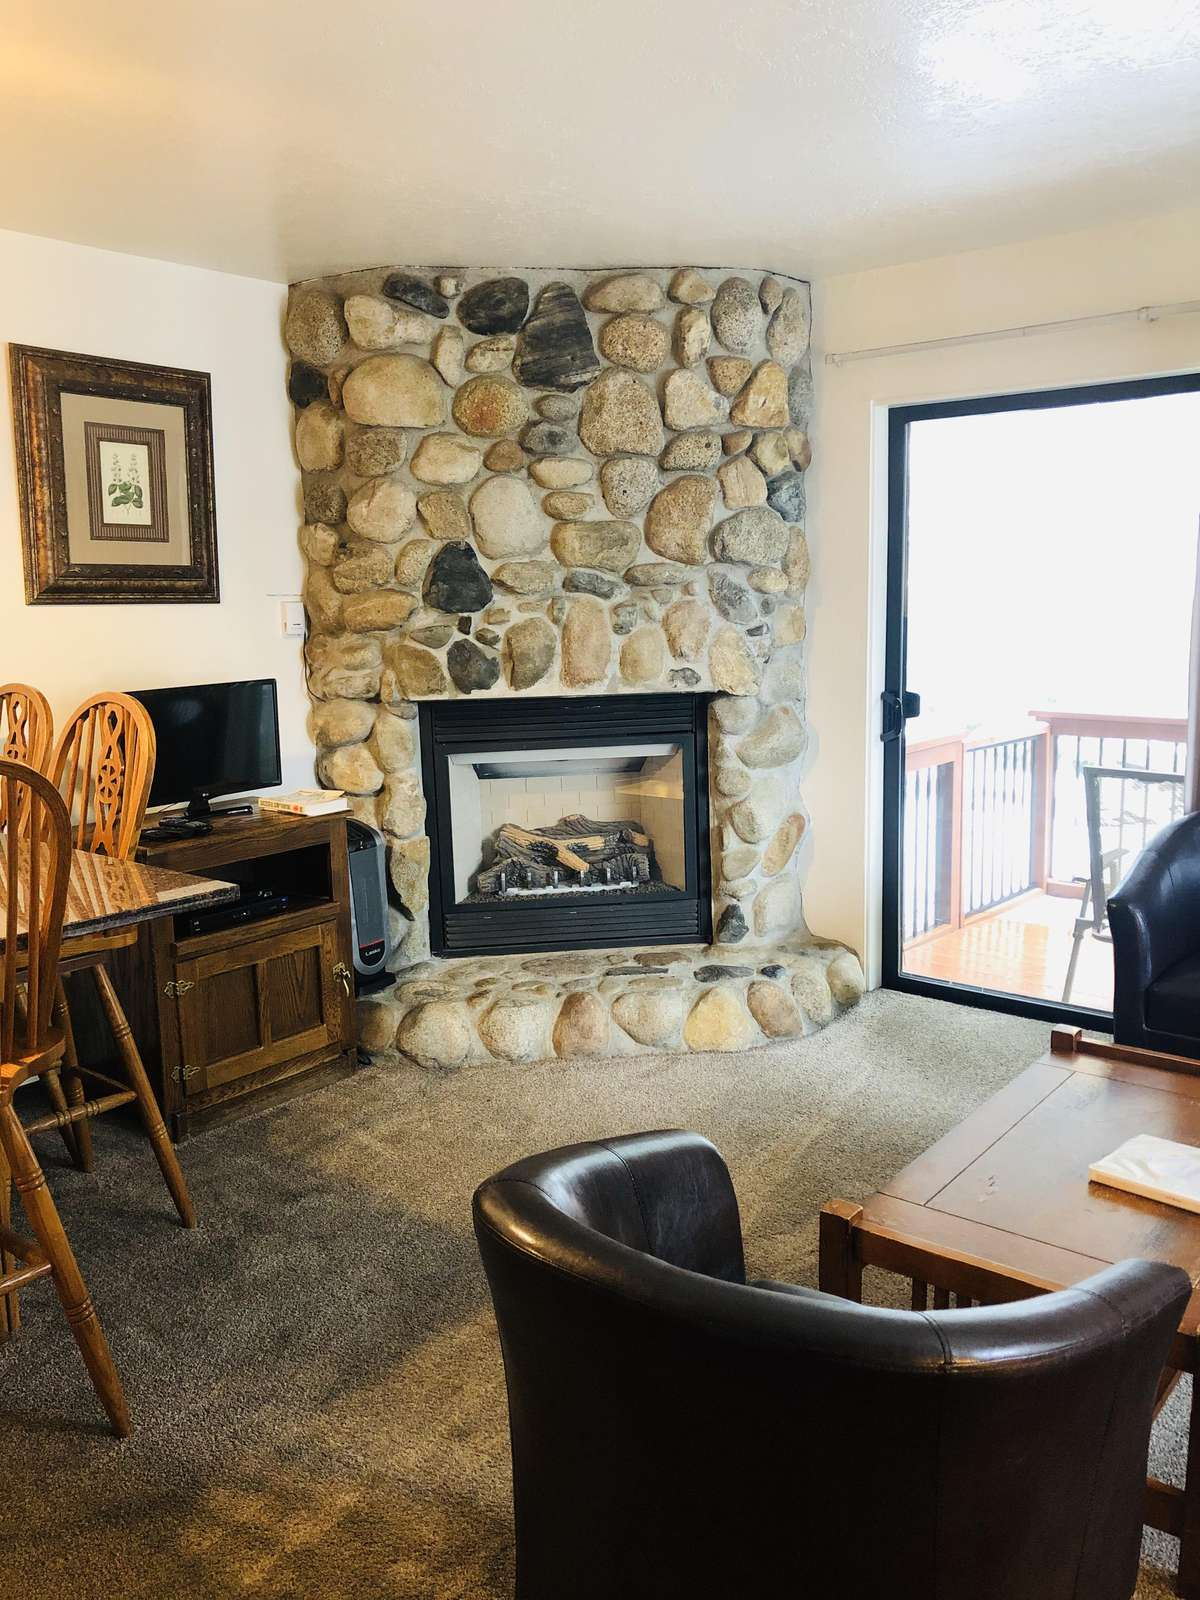 Dining area, gas fireplace and satellite TV.